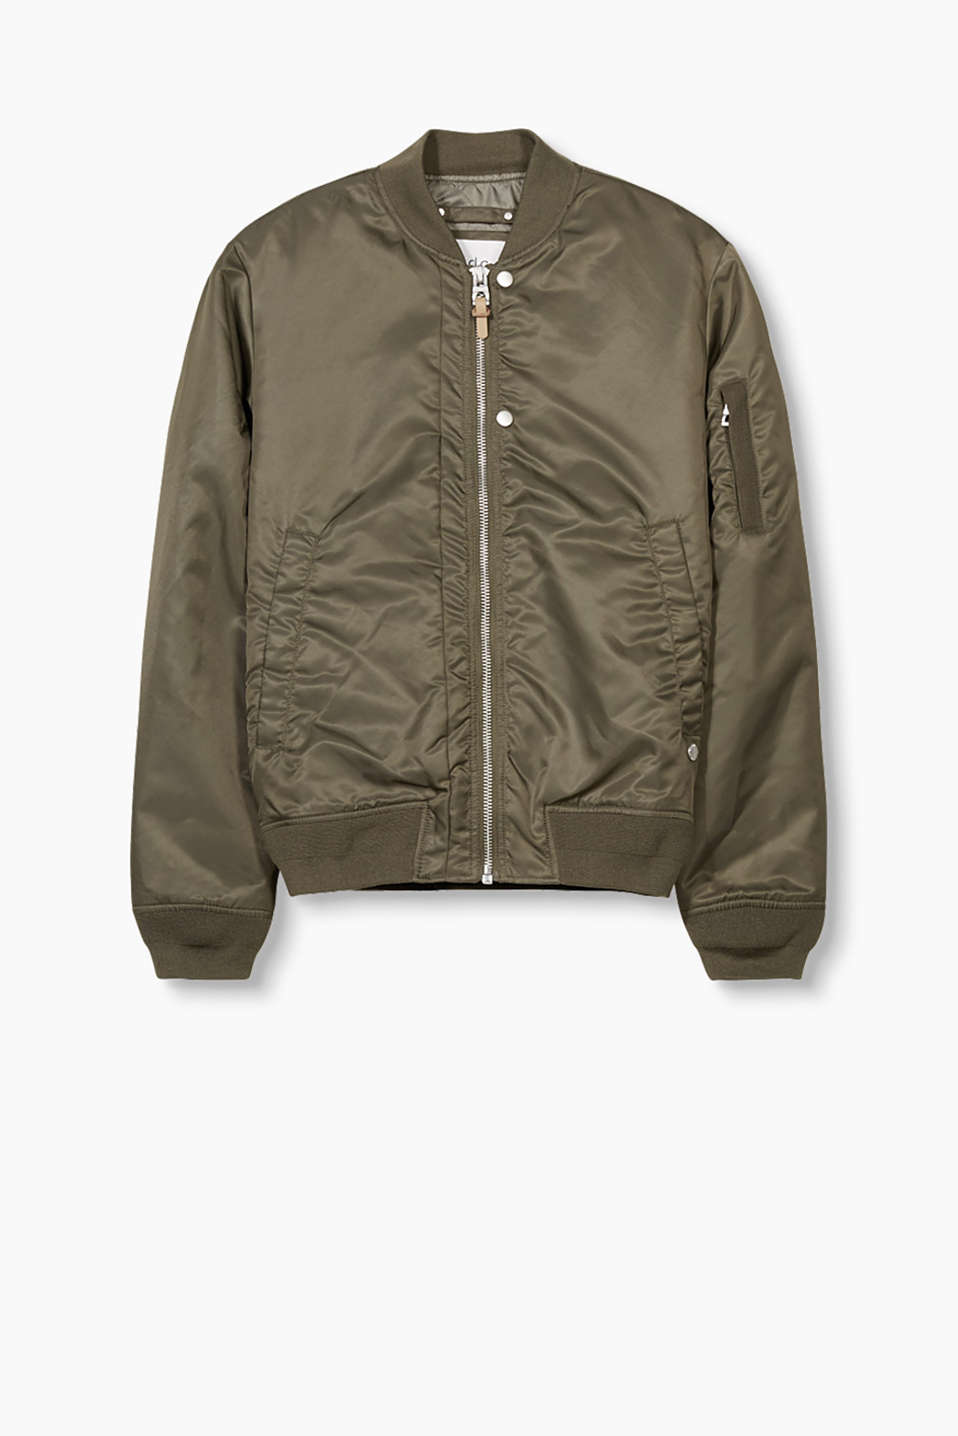 Twill jacket in a bomber style, for fine-tuning your urban look